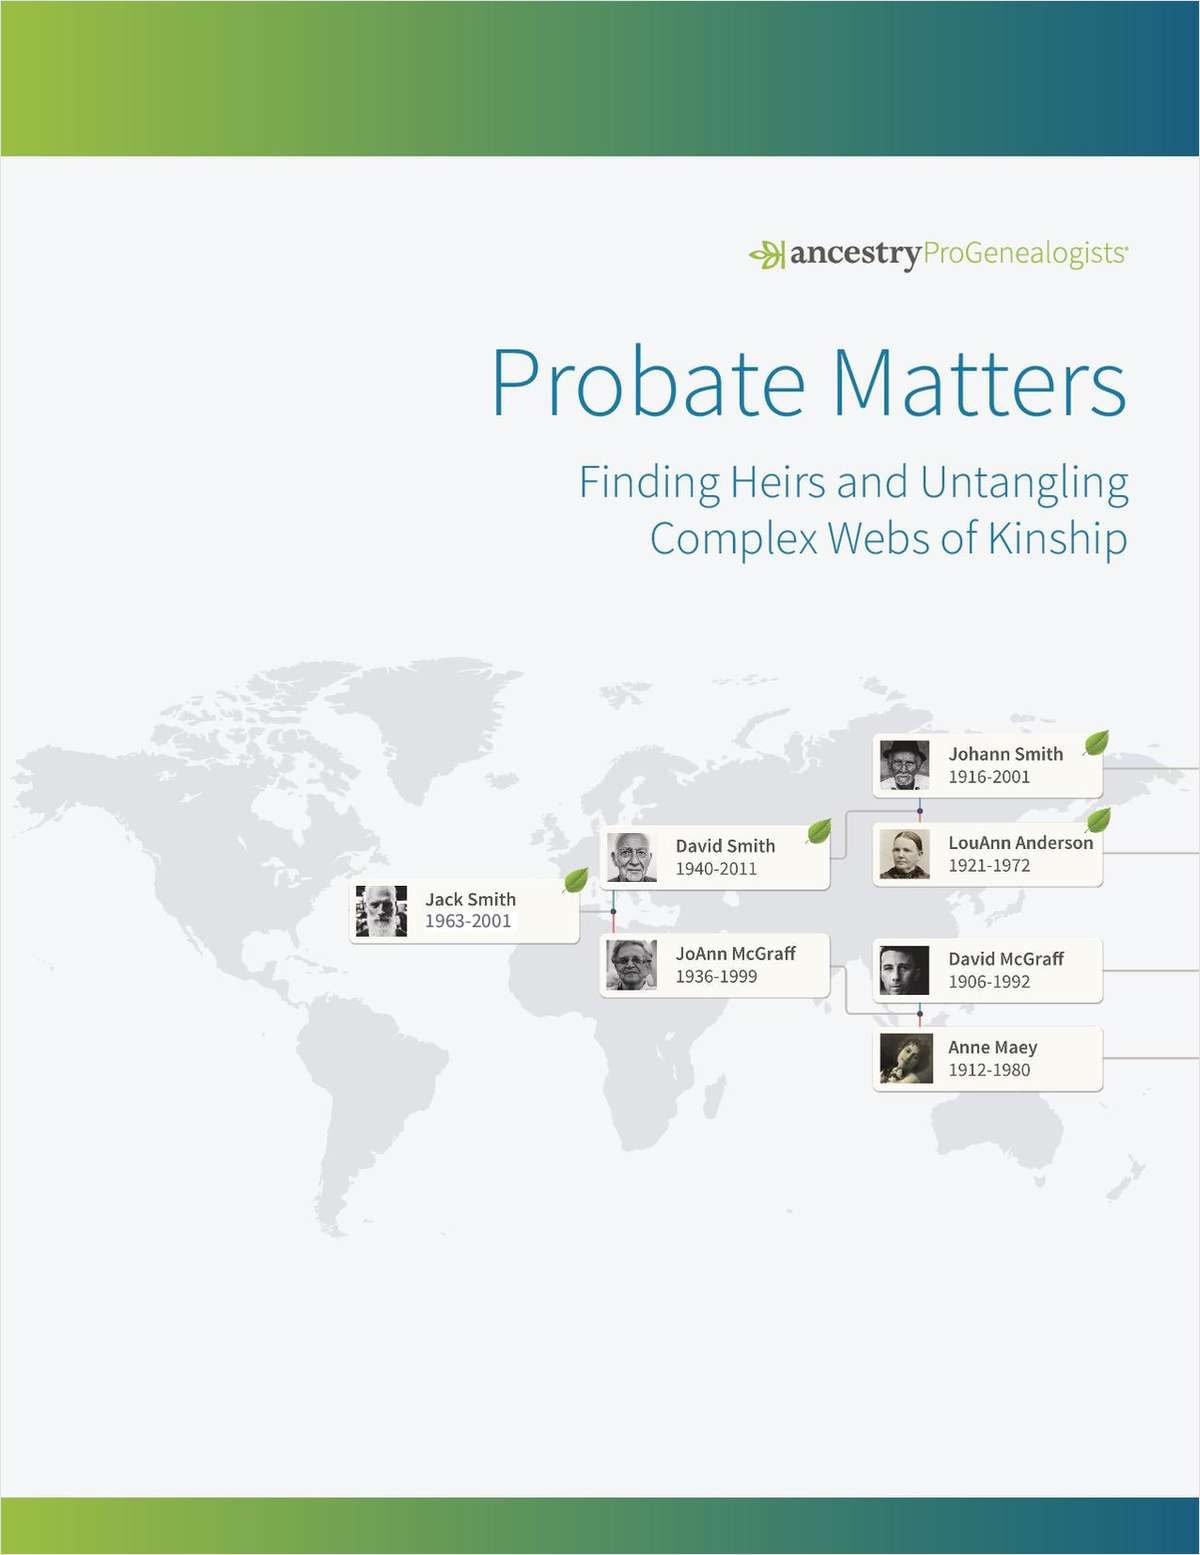 Probate Matters: Finding Heirs and Untangling Complex Webs of Kinship